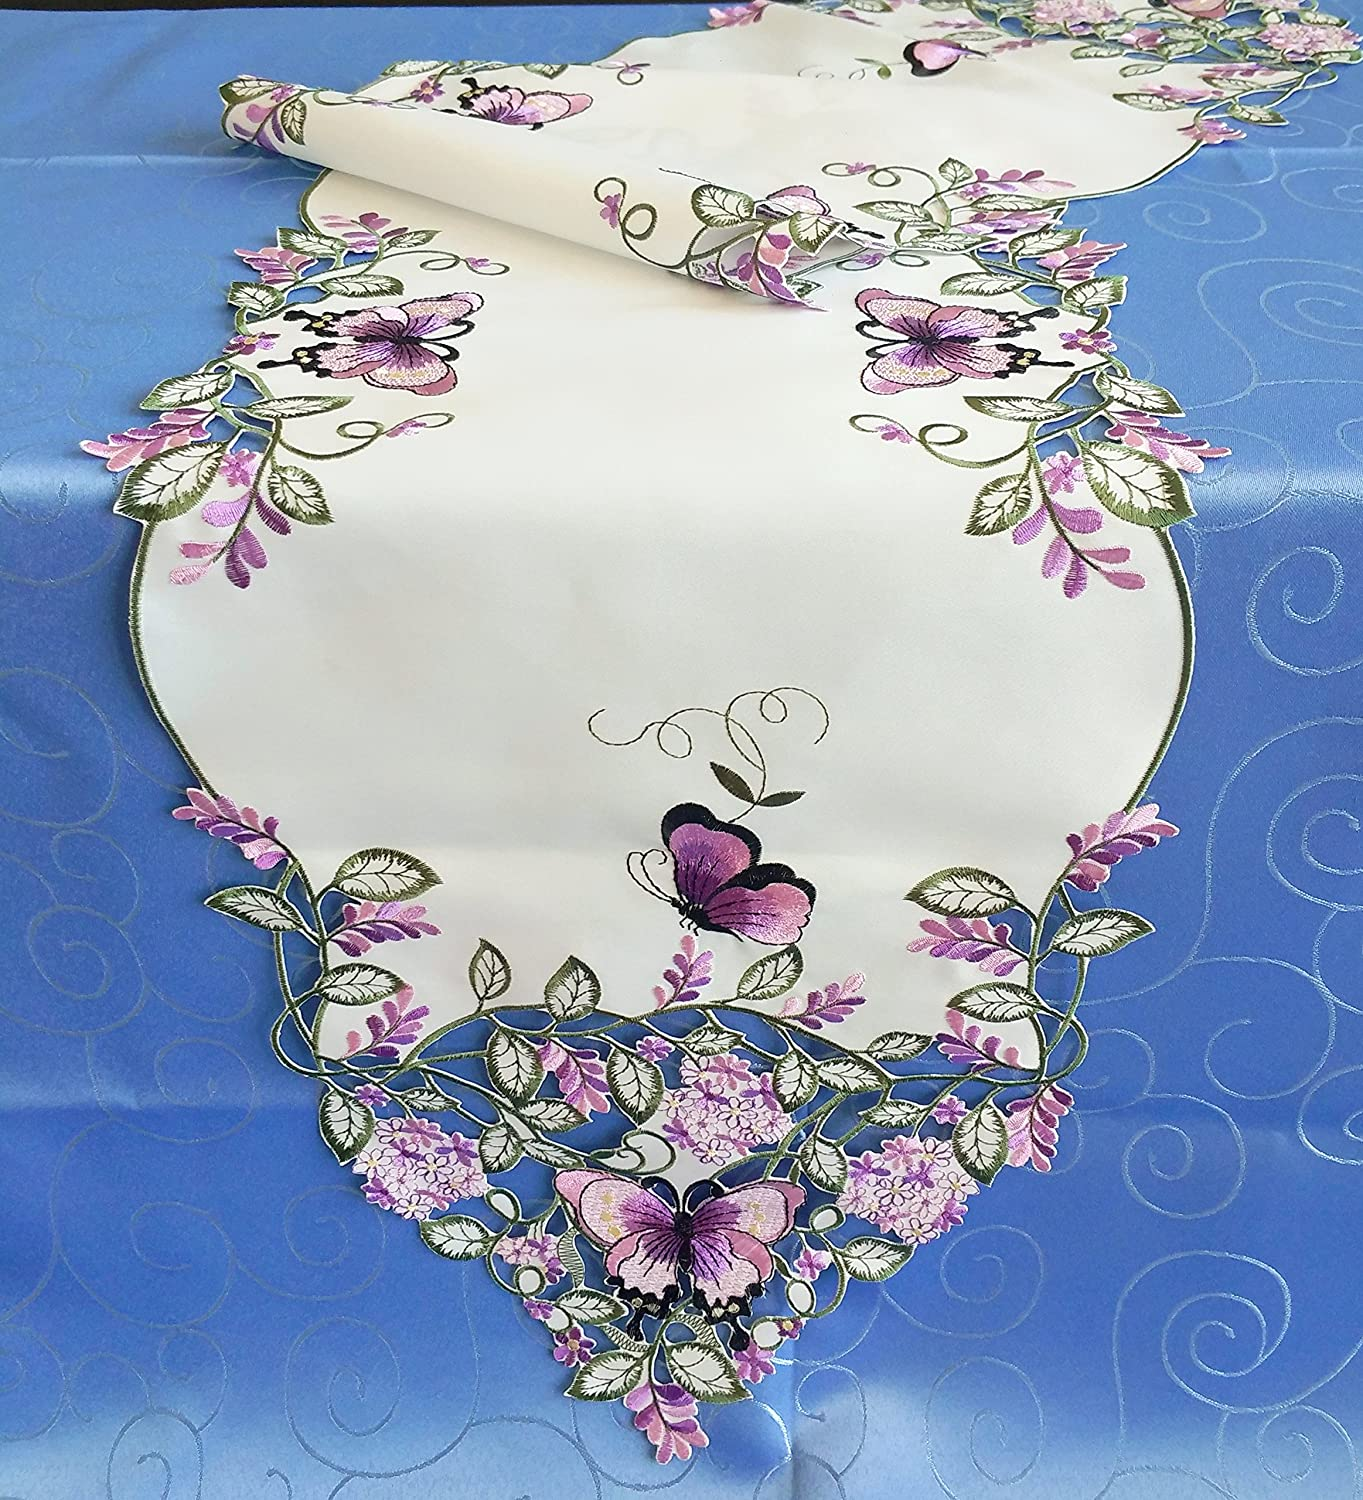 Amazing Home Fashions Fabulous Embroidery Purple Butterfly & Lavender Flowers Table Runner (13X72) Jamie's Arts